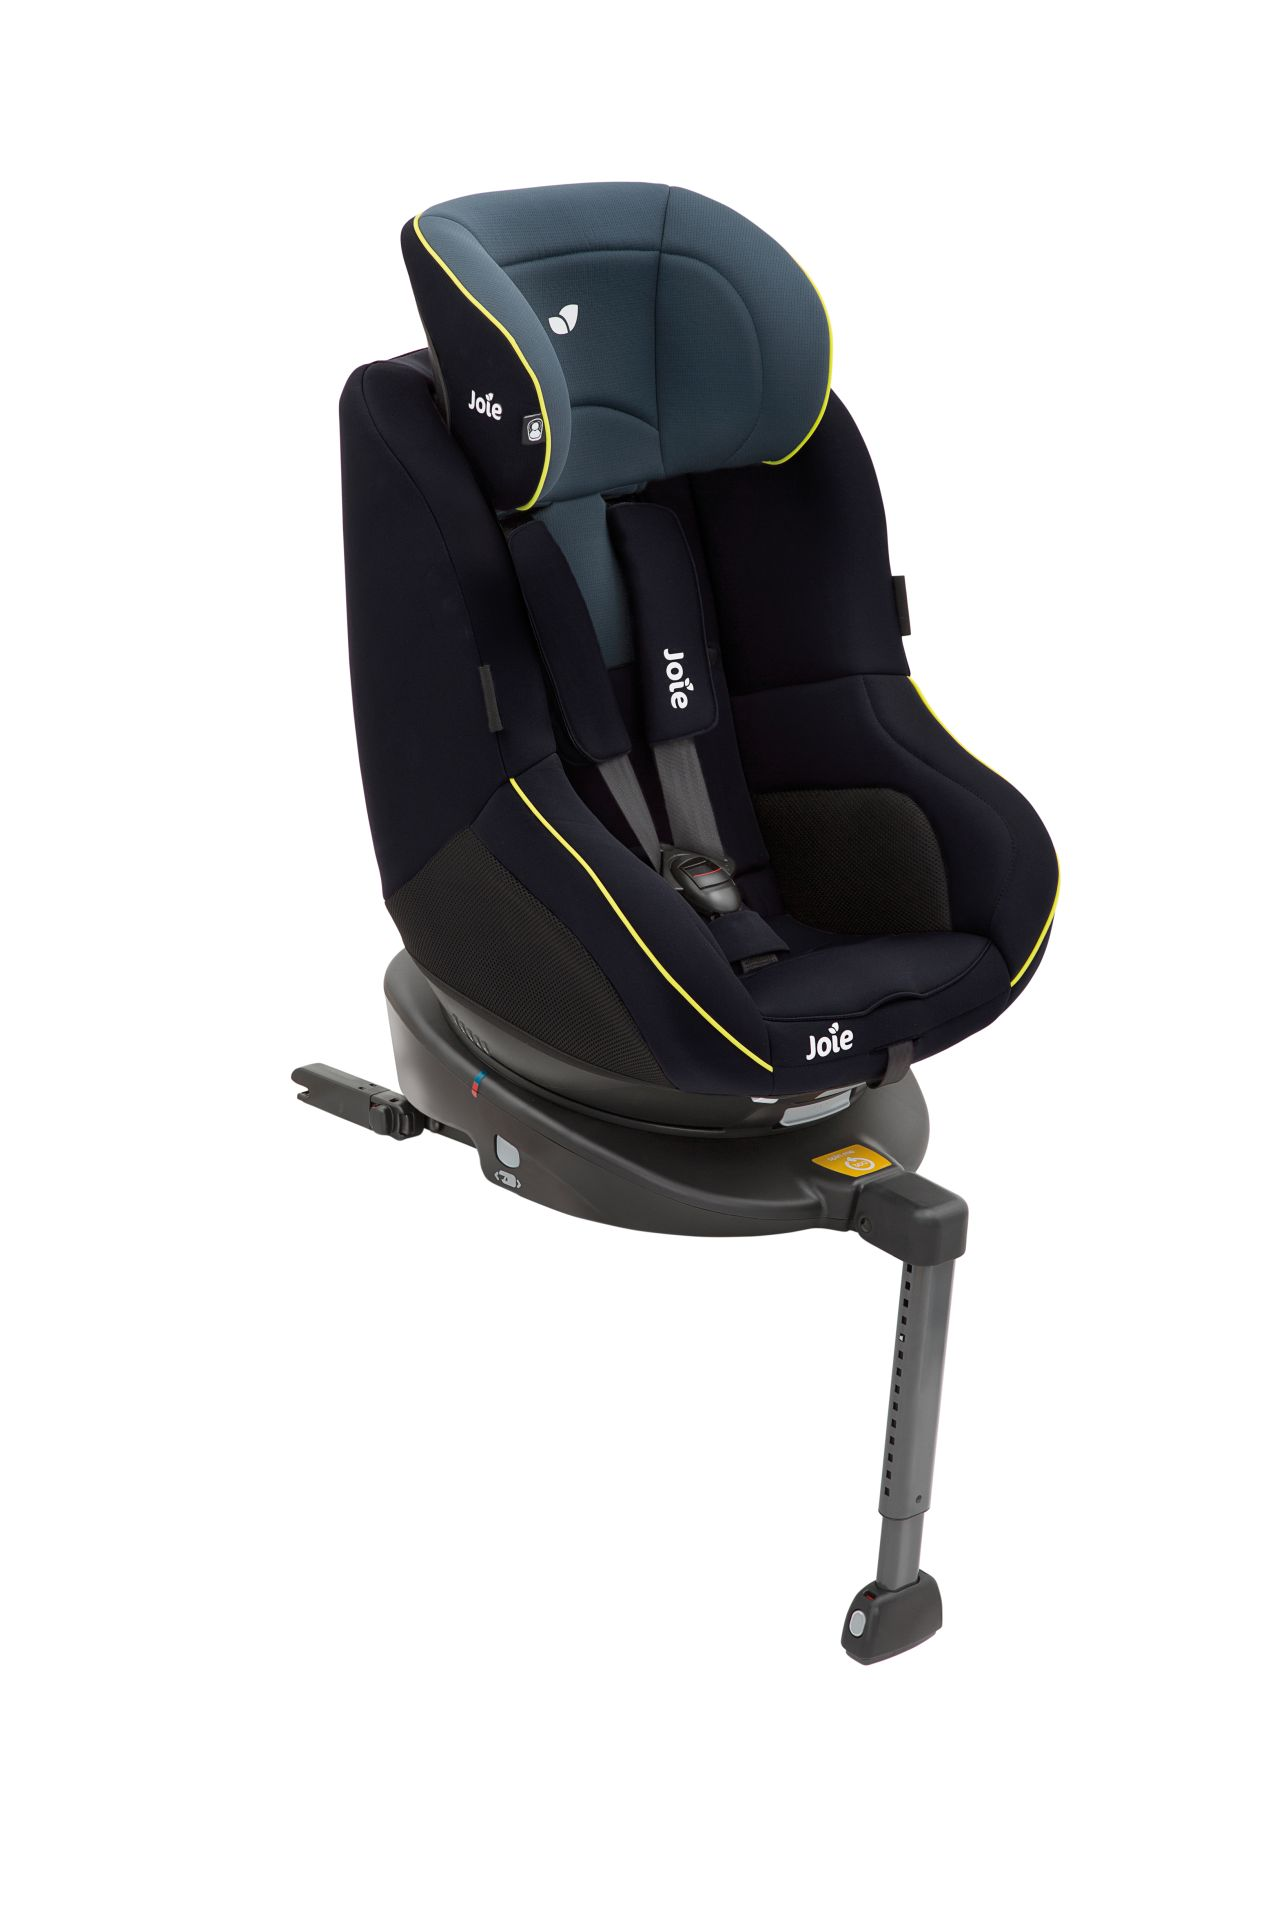 joie car seat spin 360 2018 navy blazer buy at kidsroom. Black Bedroom Furniture Sets. Home Design Ideas